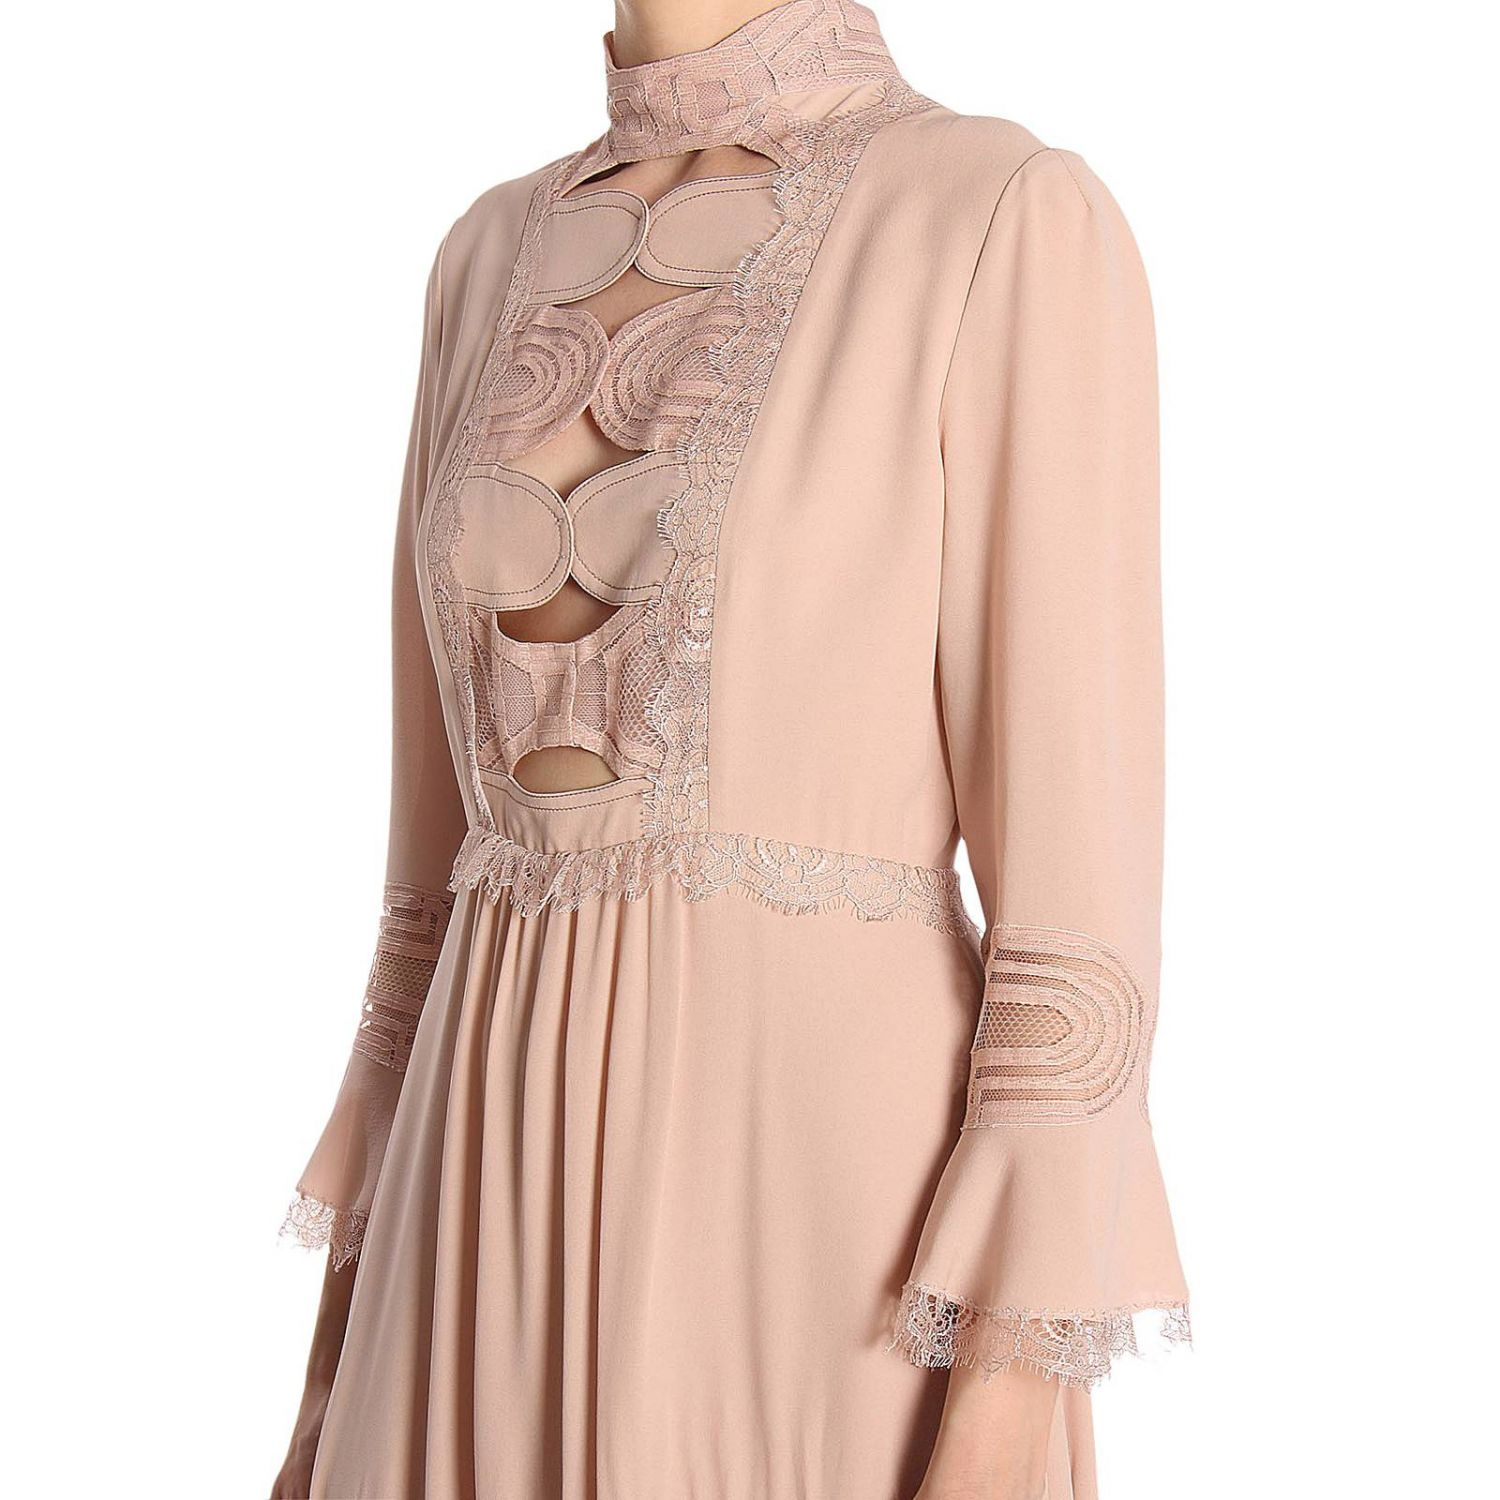 Dress Bottega Veneta: Dress women Bottega Veneta blush pink 4